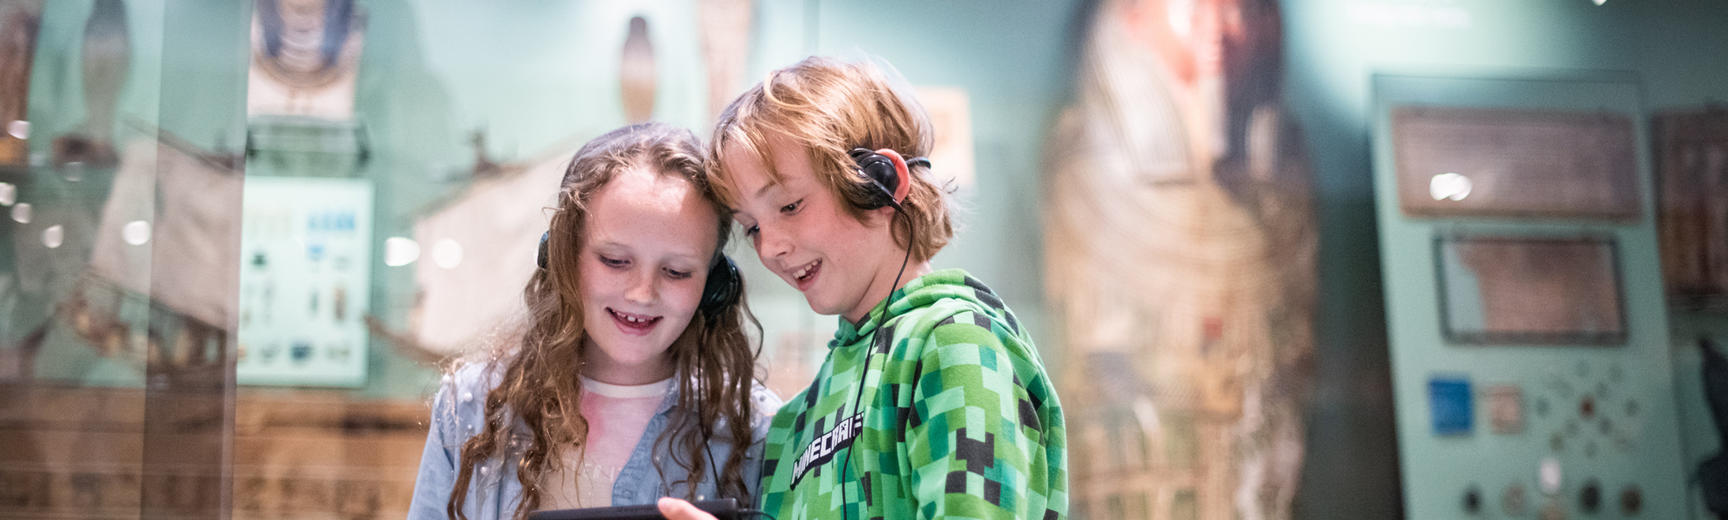 Two children in the Egypt gallery holding multimedia guides